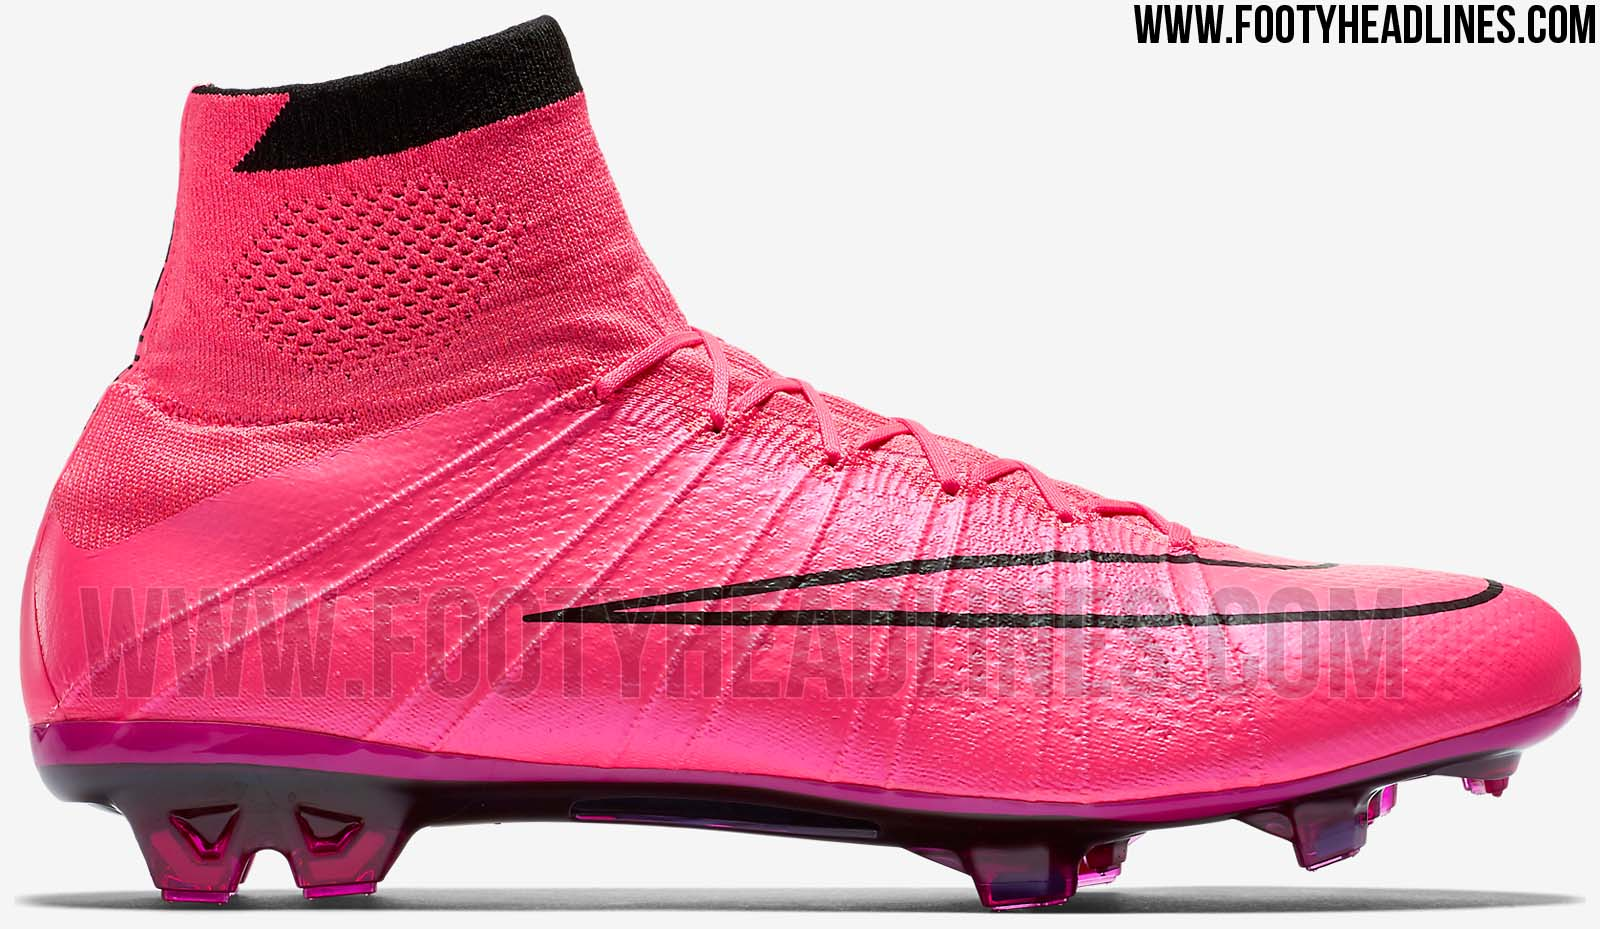 Top Soccer Shoes Of All Time